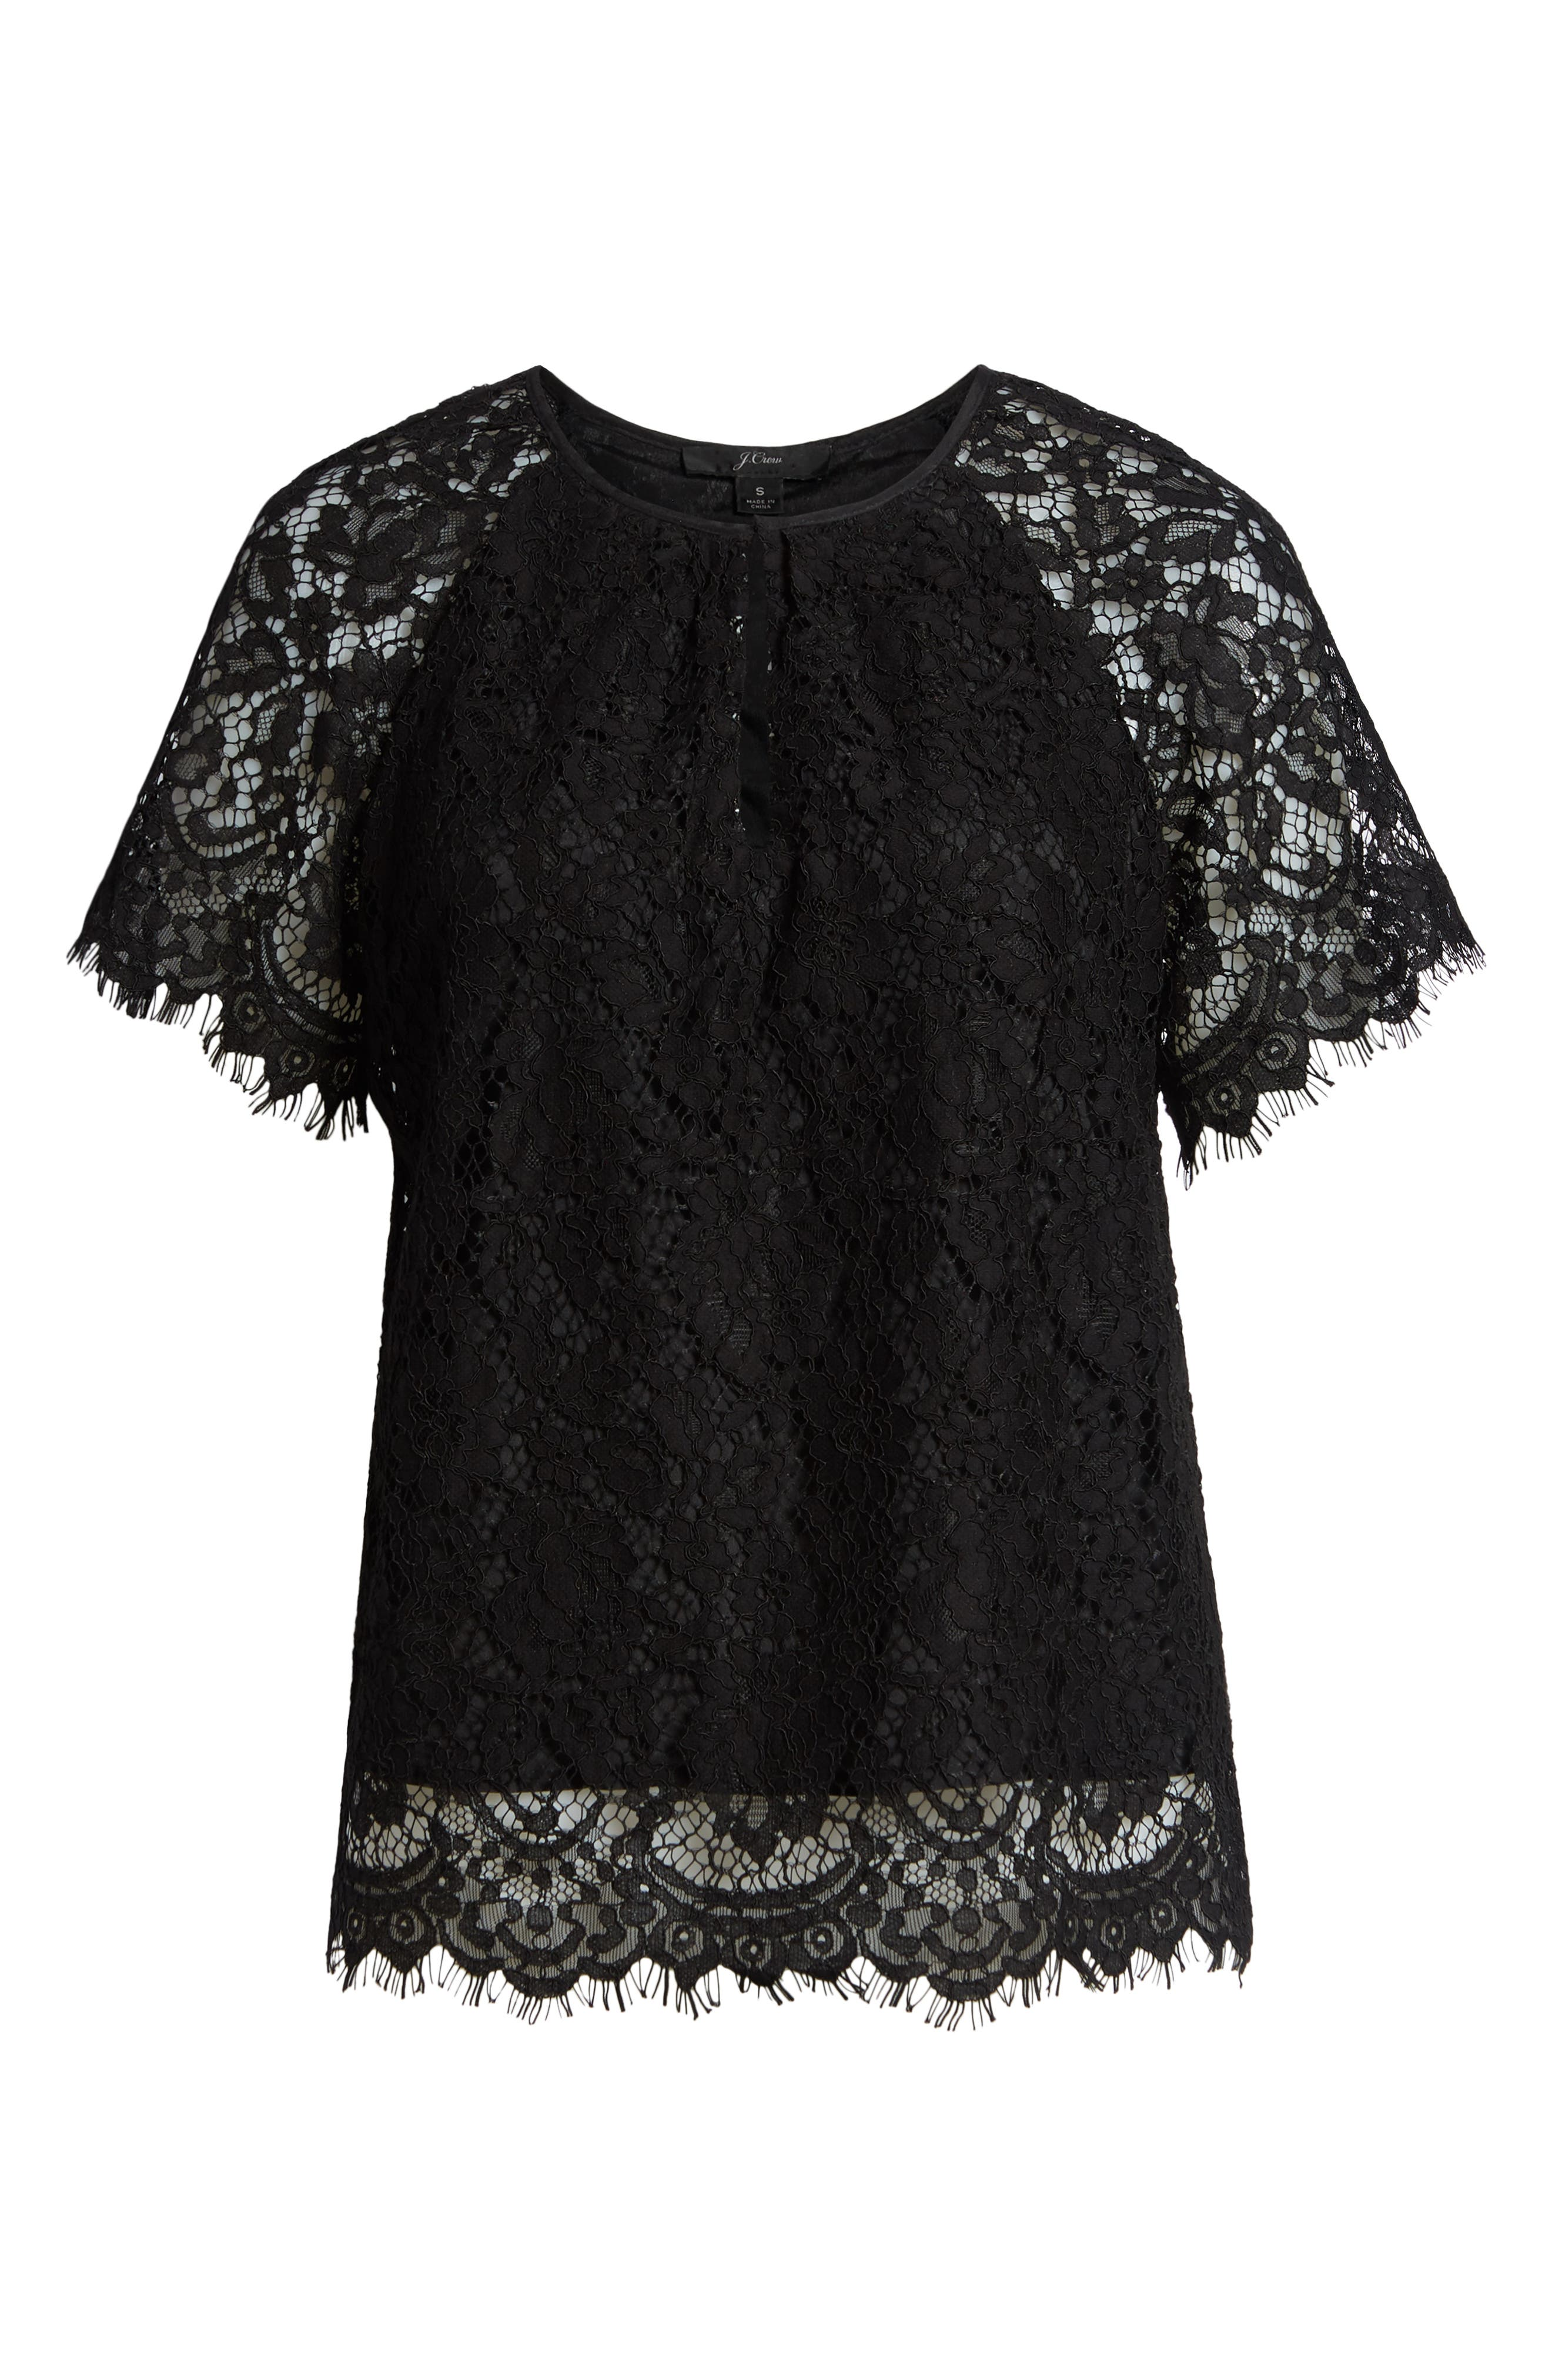 J.CREW,                             Short Sleeve Lace Top,                             Alternate thumbnail 6, color,                             001